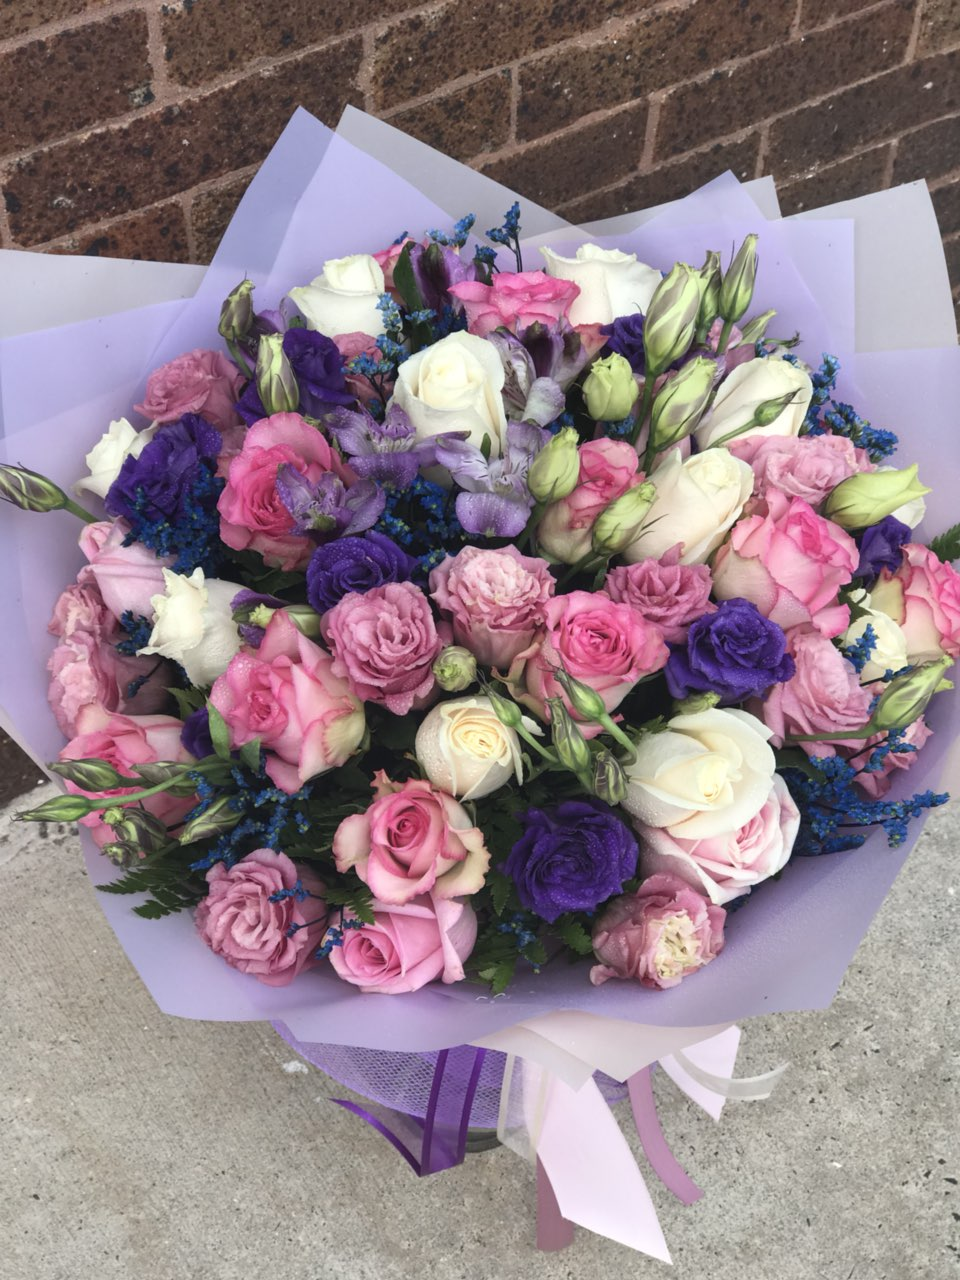 Whatever the occasion - when you truly want to spoil her, send this luxurious lavender arrangement! Deluxe and dramatic, this mix of flowers is a gift she won't soon forget.  Includes:  Pink roses, purple and pink lisianthus, white roses, blue limonium, fern. Wrapped in a craft paper Free message card